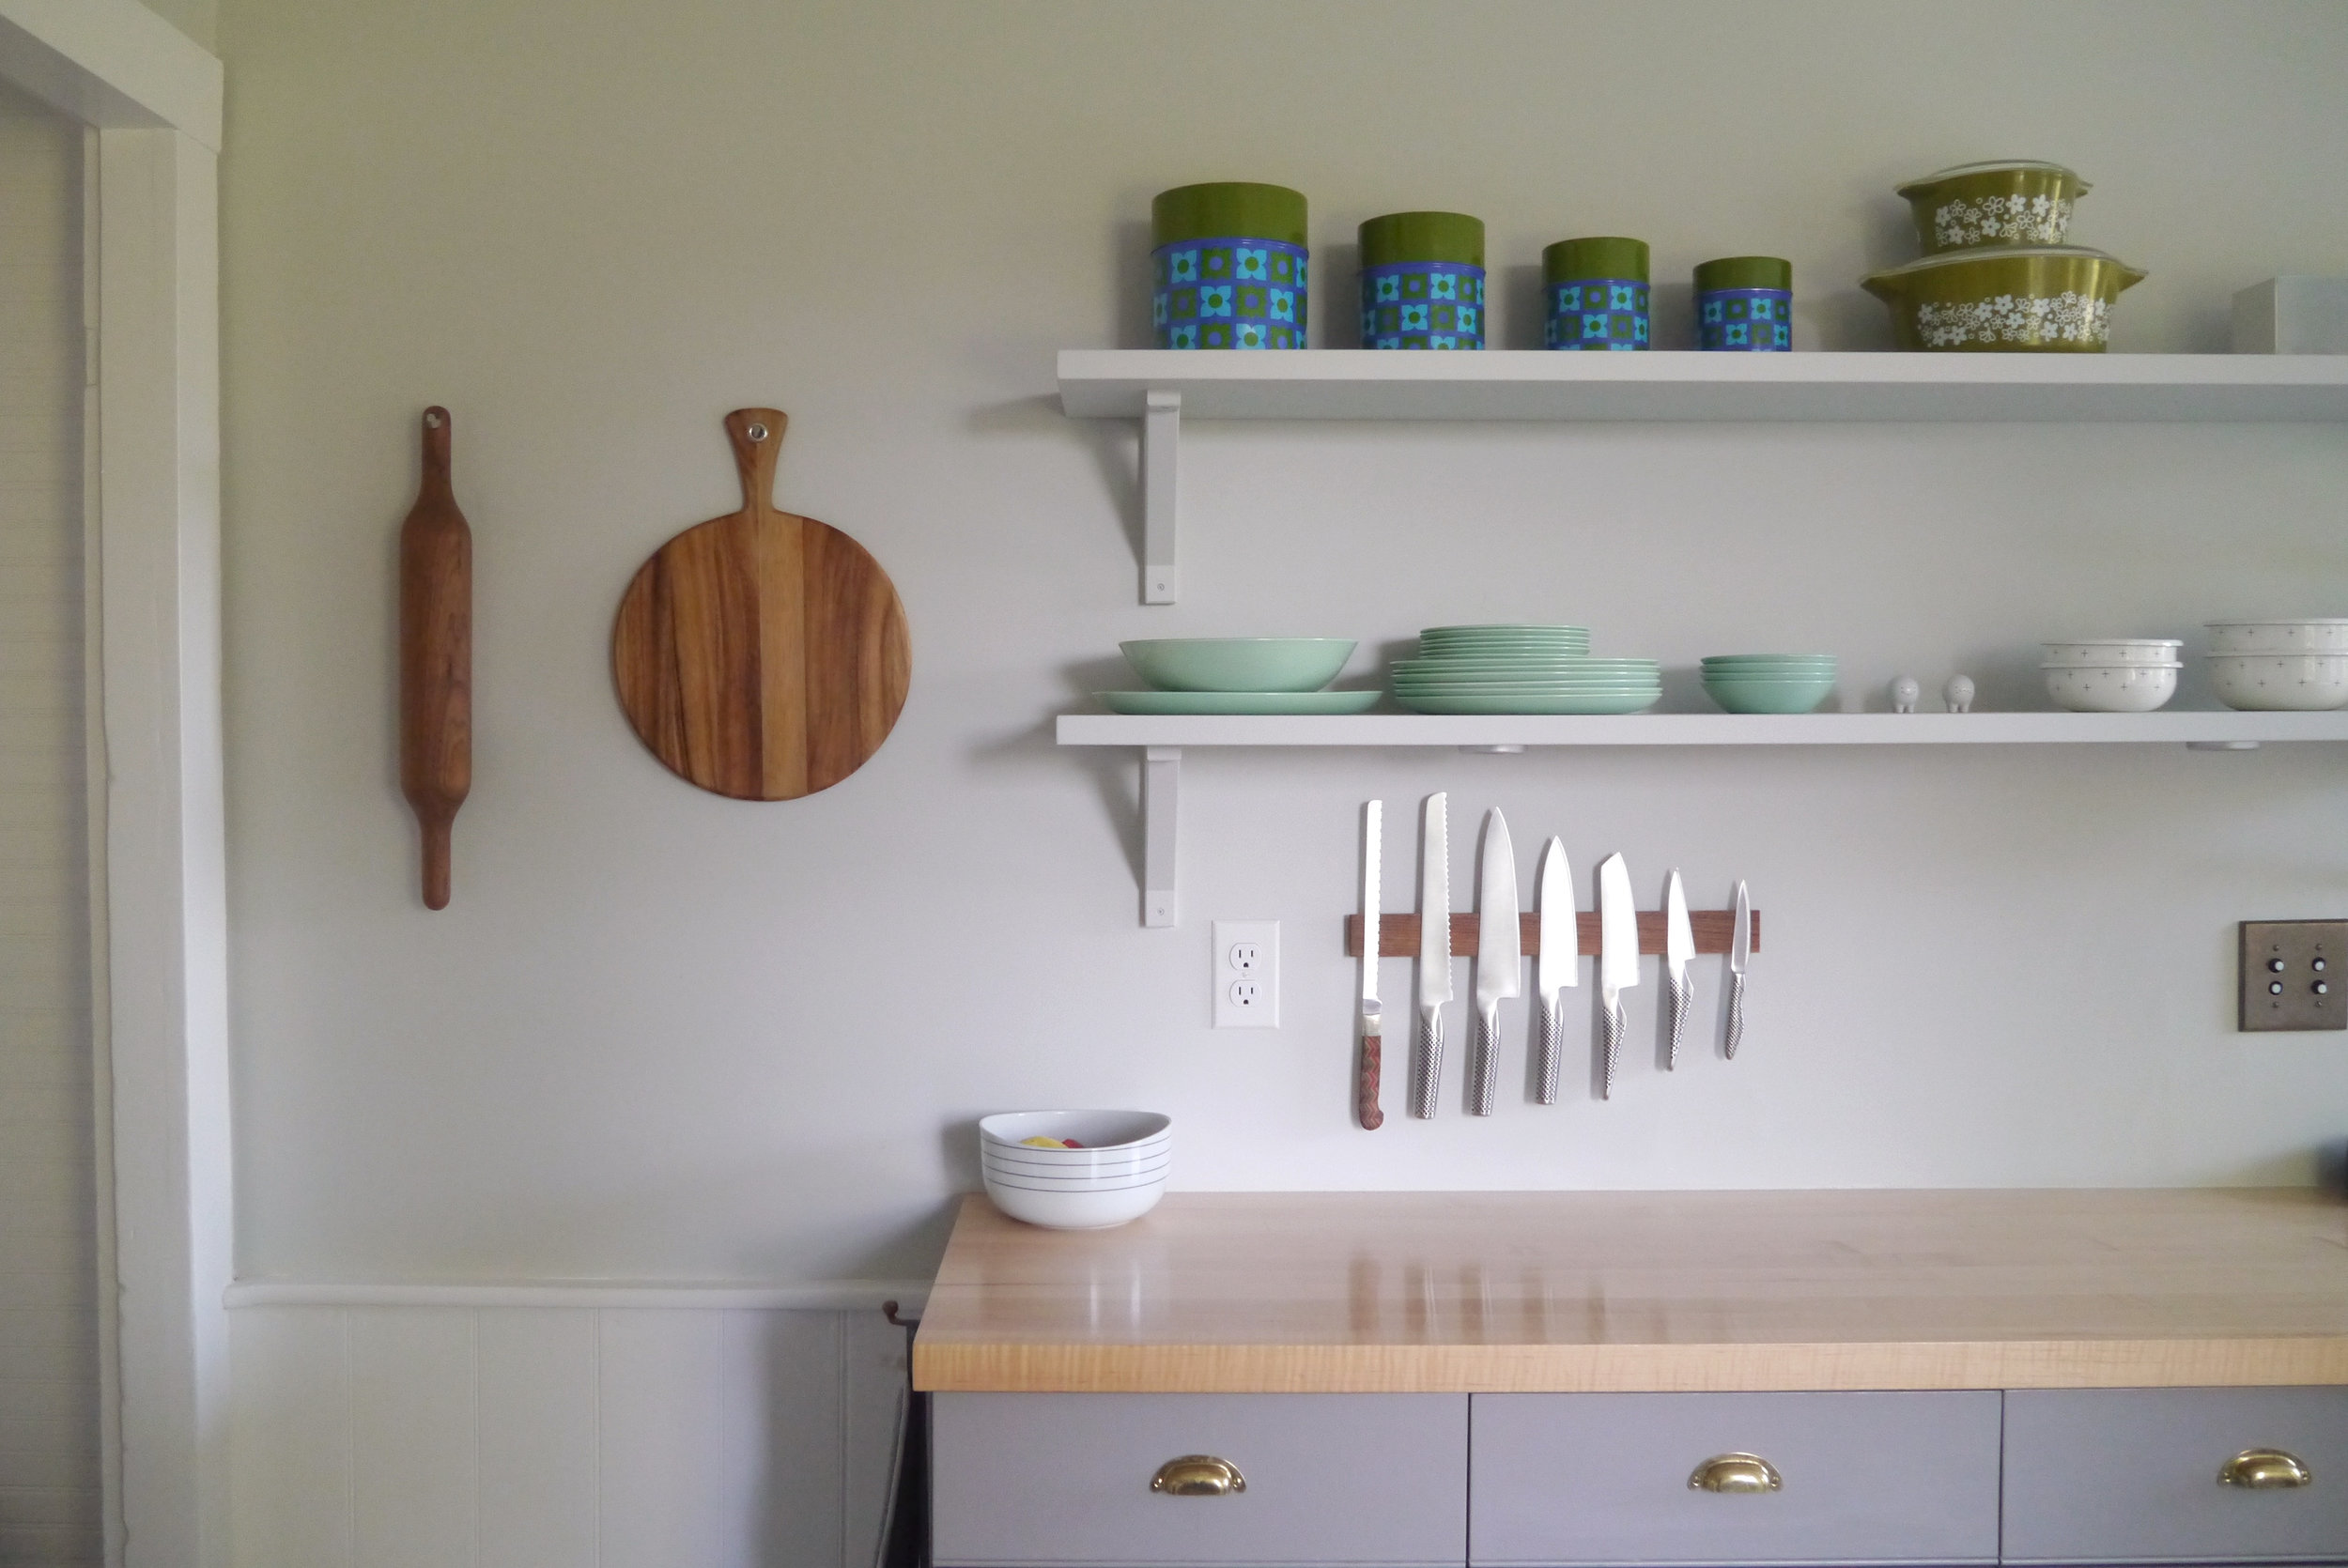 Kitchen - Exposed shelving